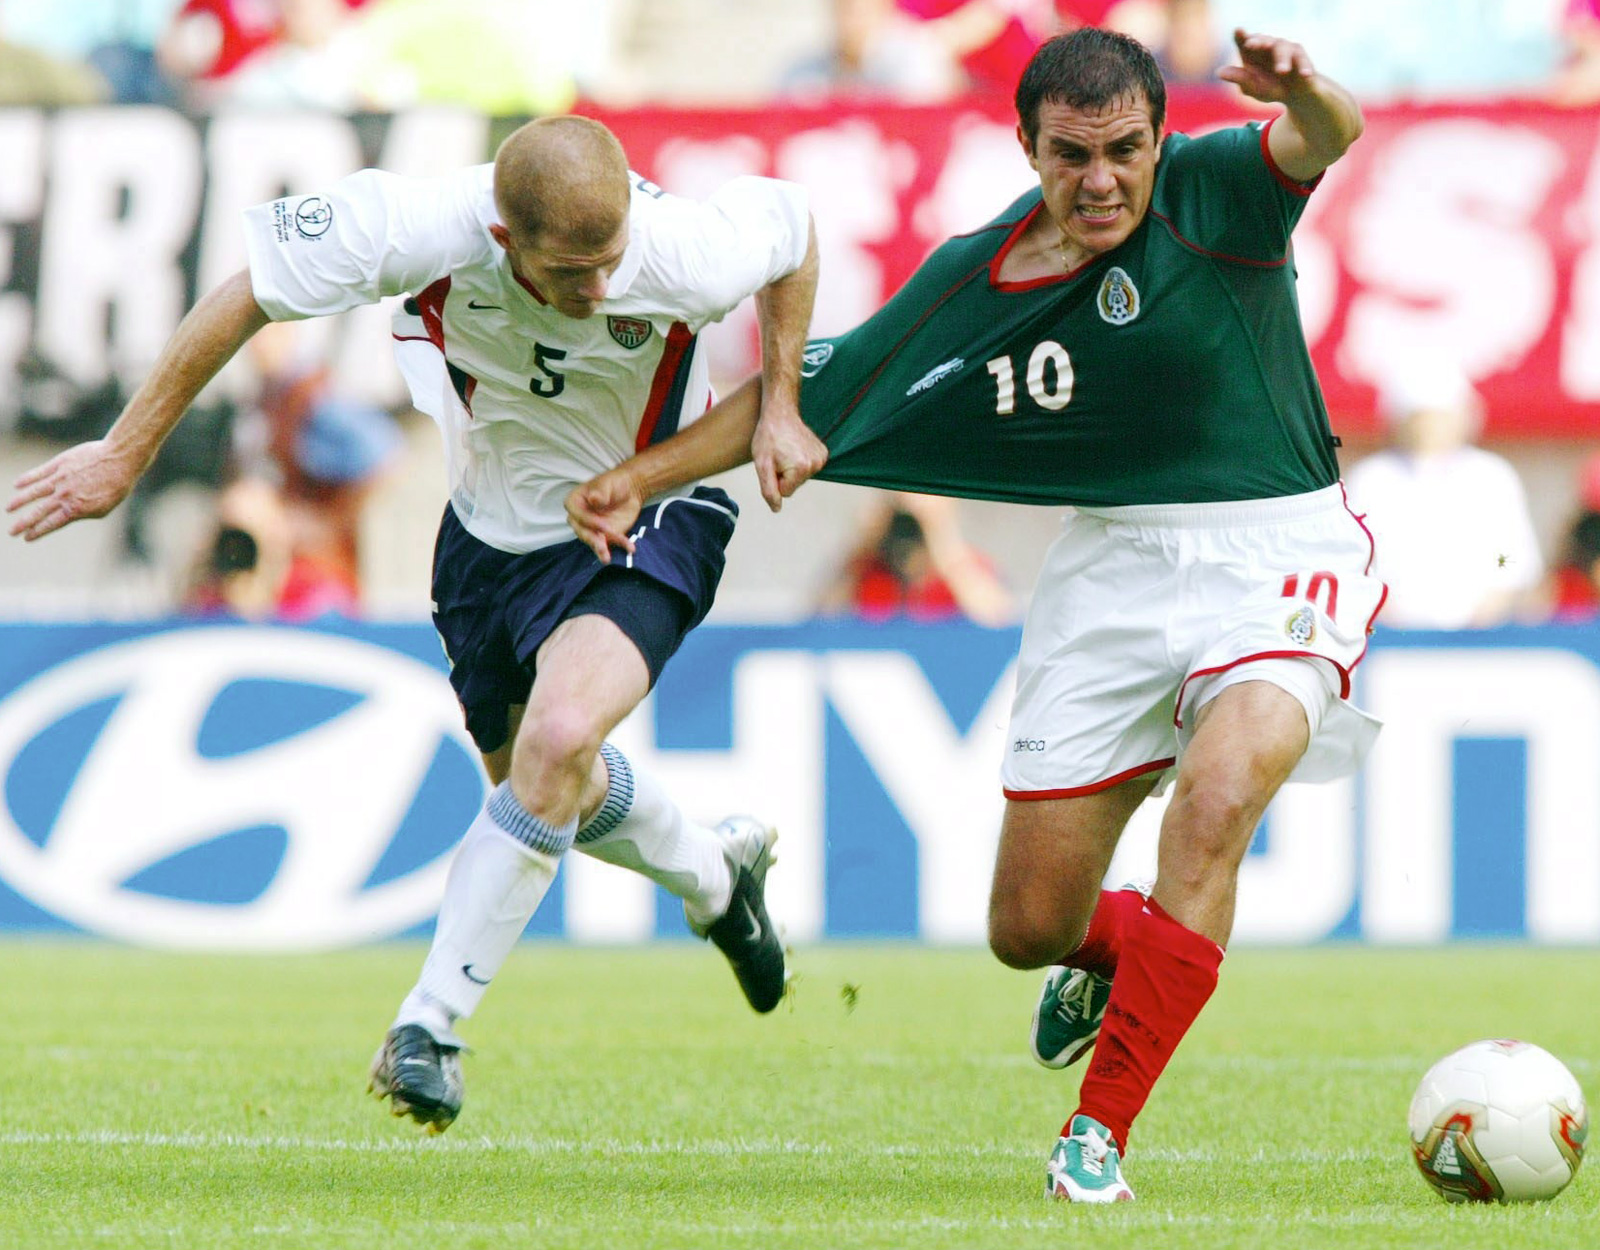 Blanco and John O'Brien tussle for the ball in the 2002 World Cup round of 16, a match the Americans won 2-0.